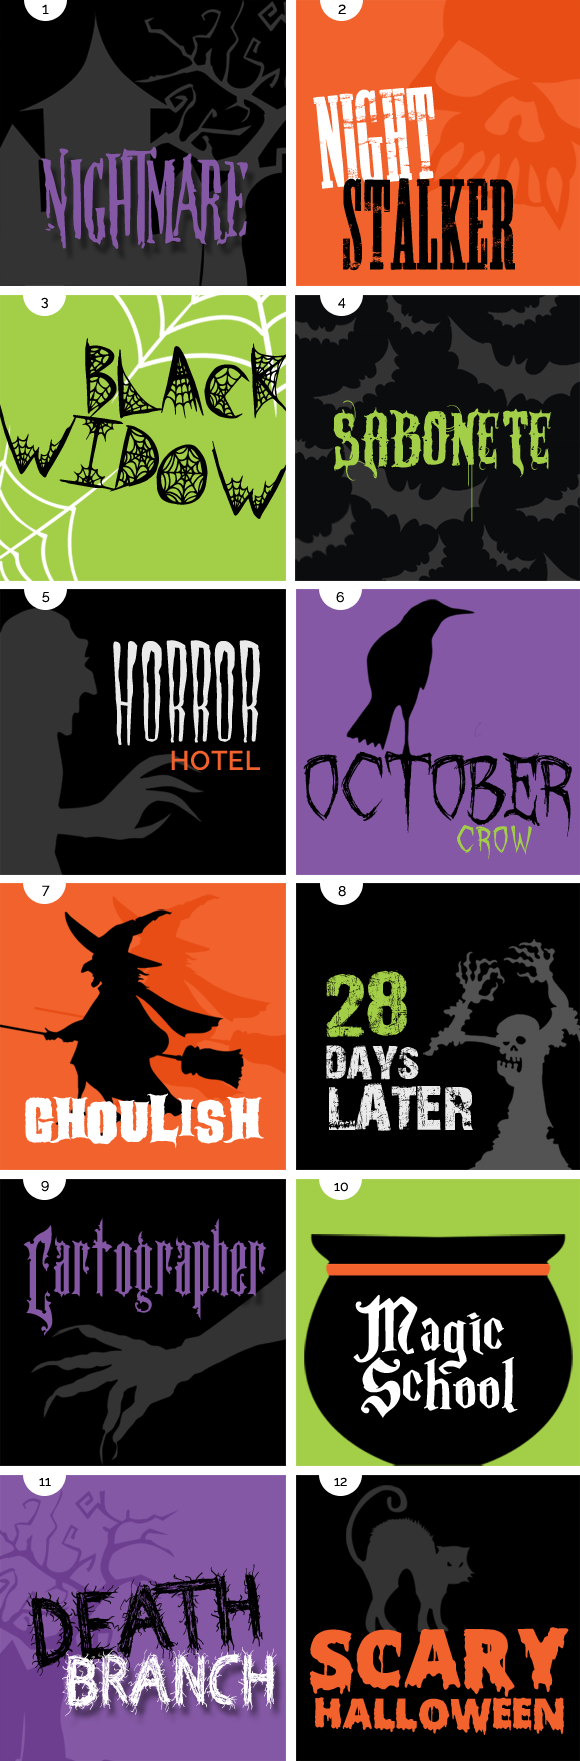 12 Favorite Free Halloween Fonts - Designer Blogs